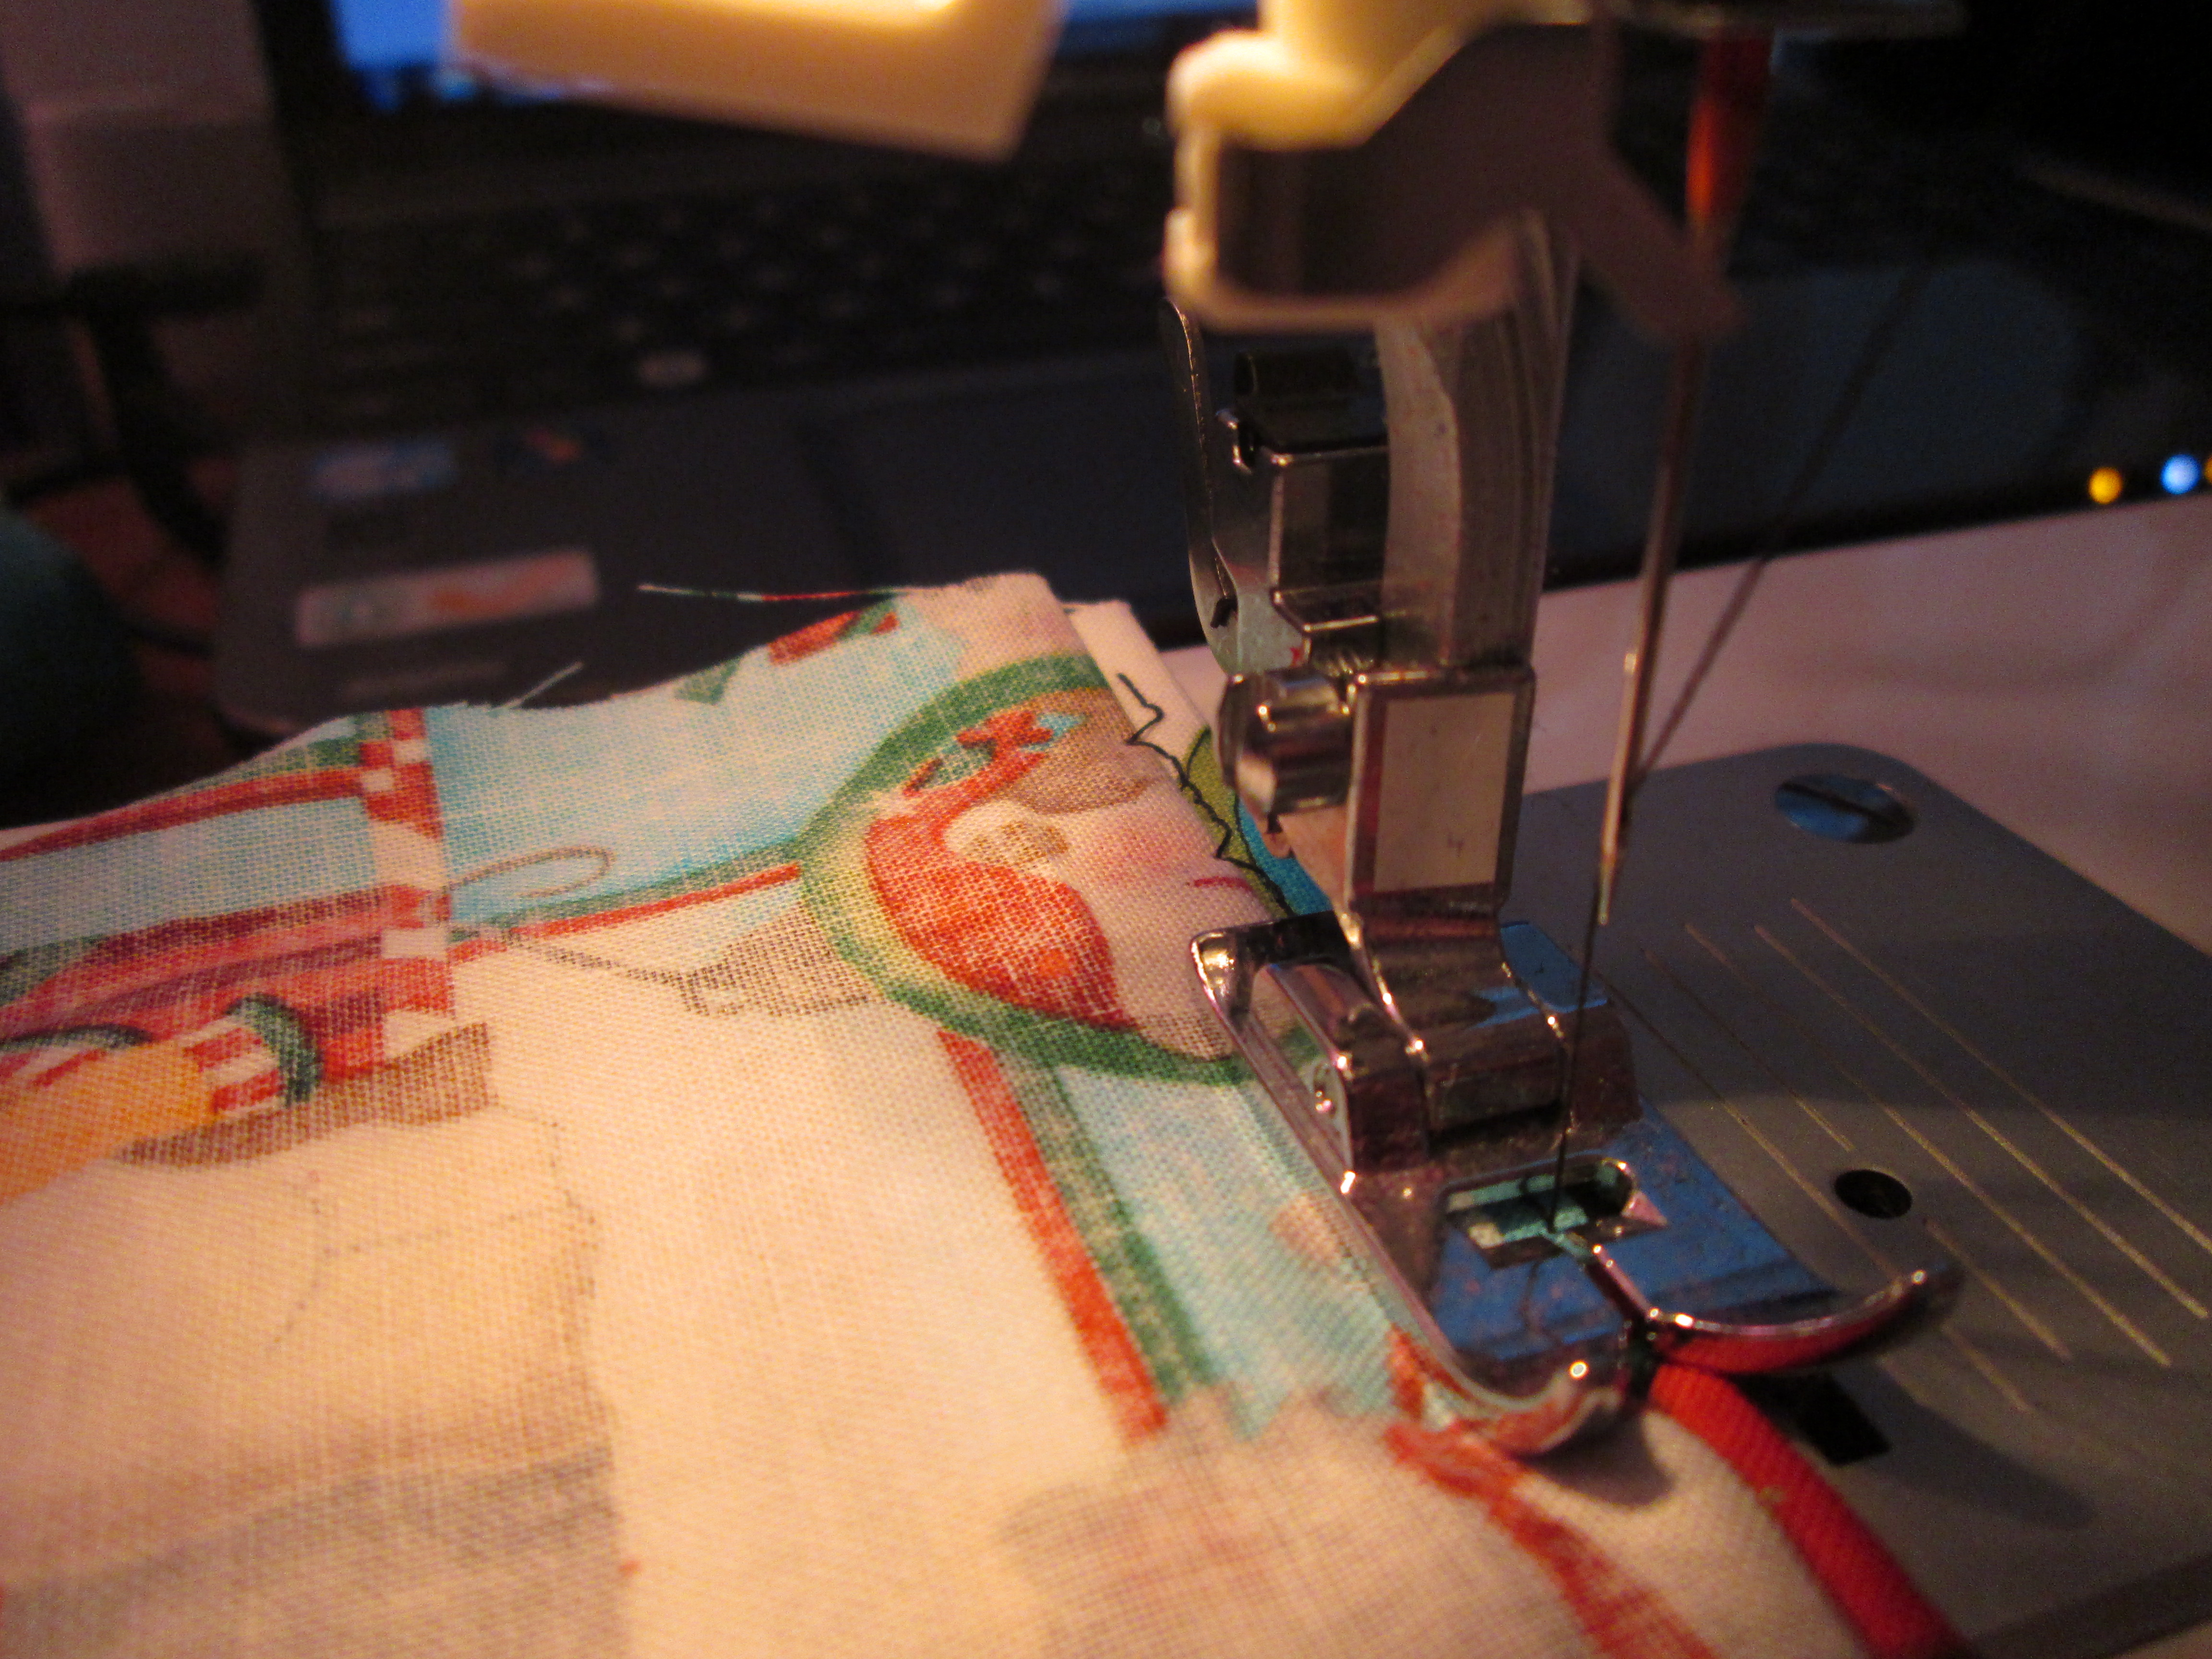 Can someone recommend me a beginner sewing machine?